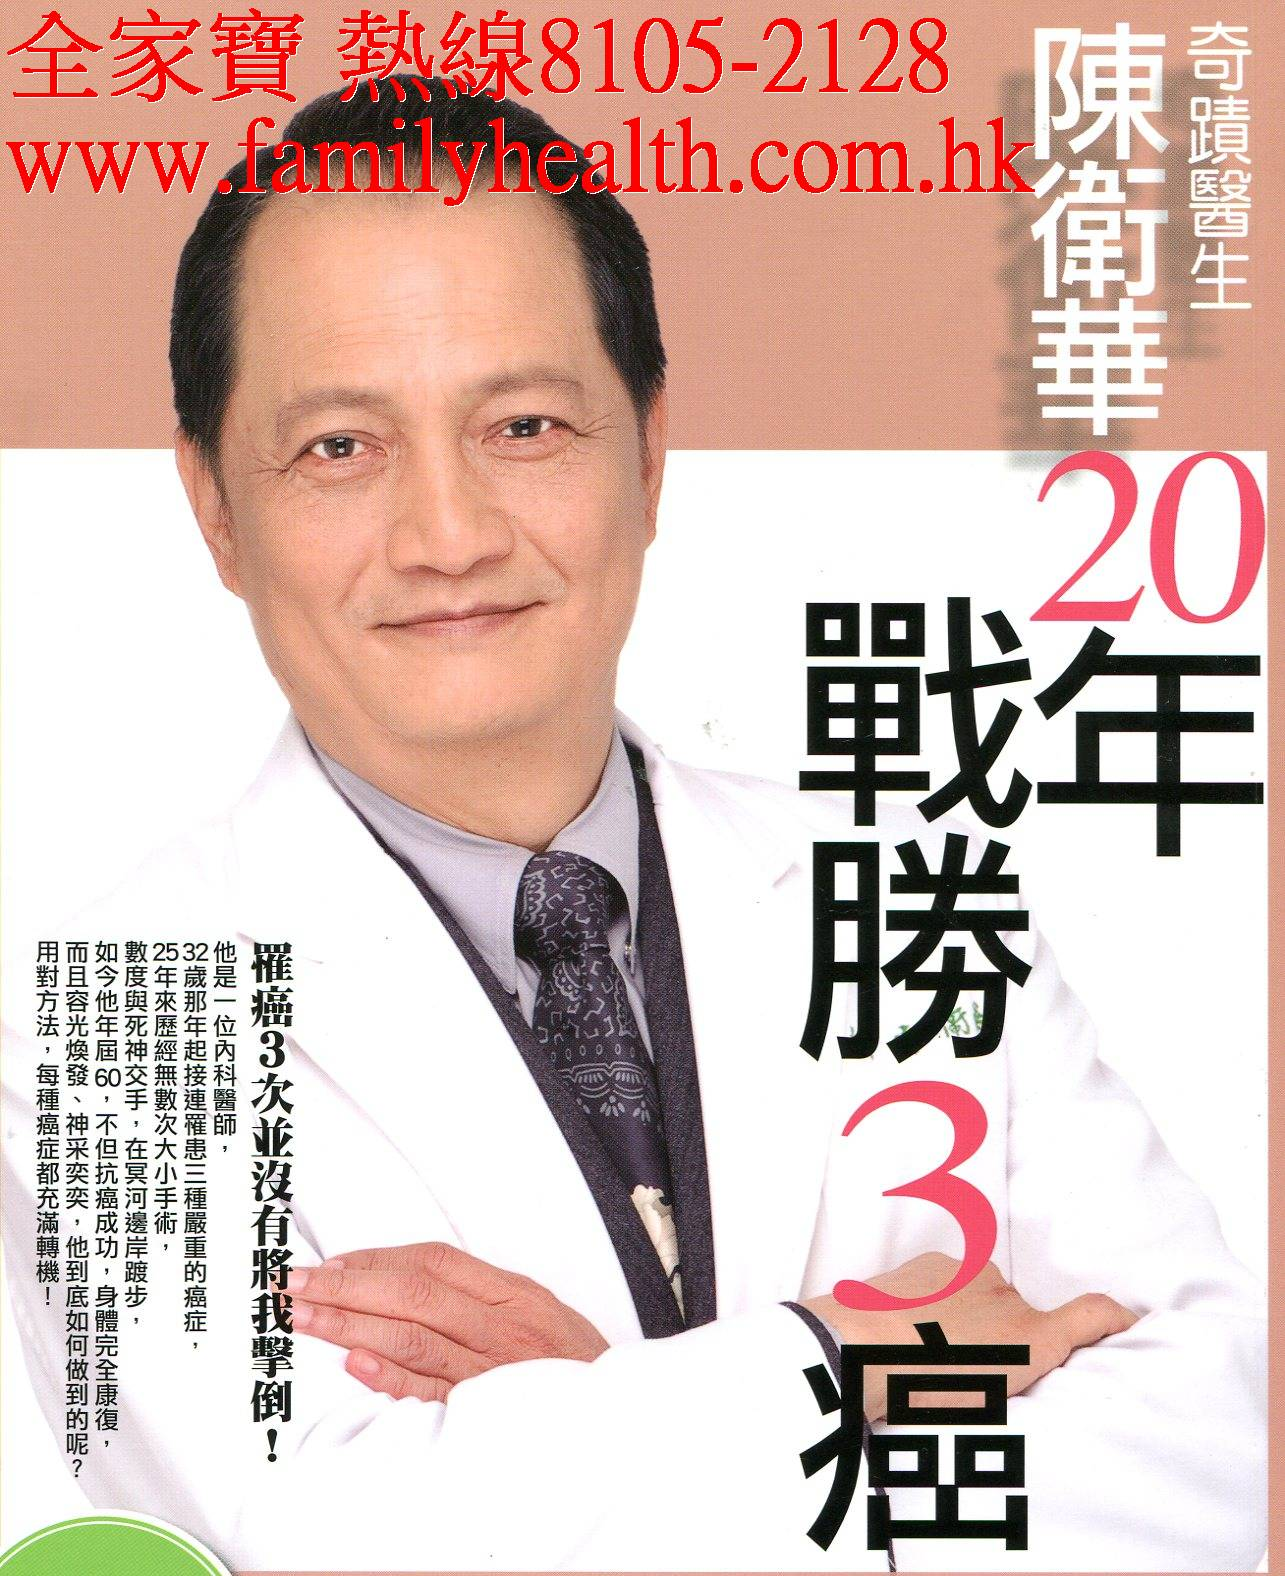 http://www.familyhealth.com.hk/files/full/388_0.jpg